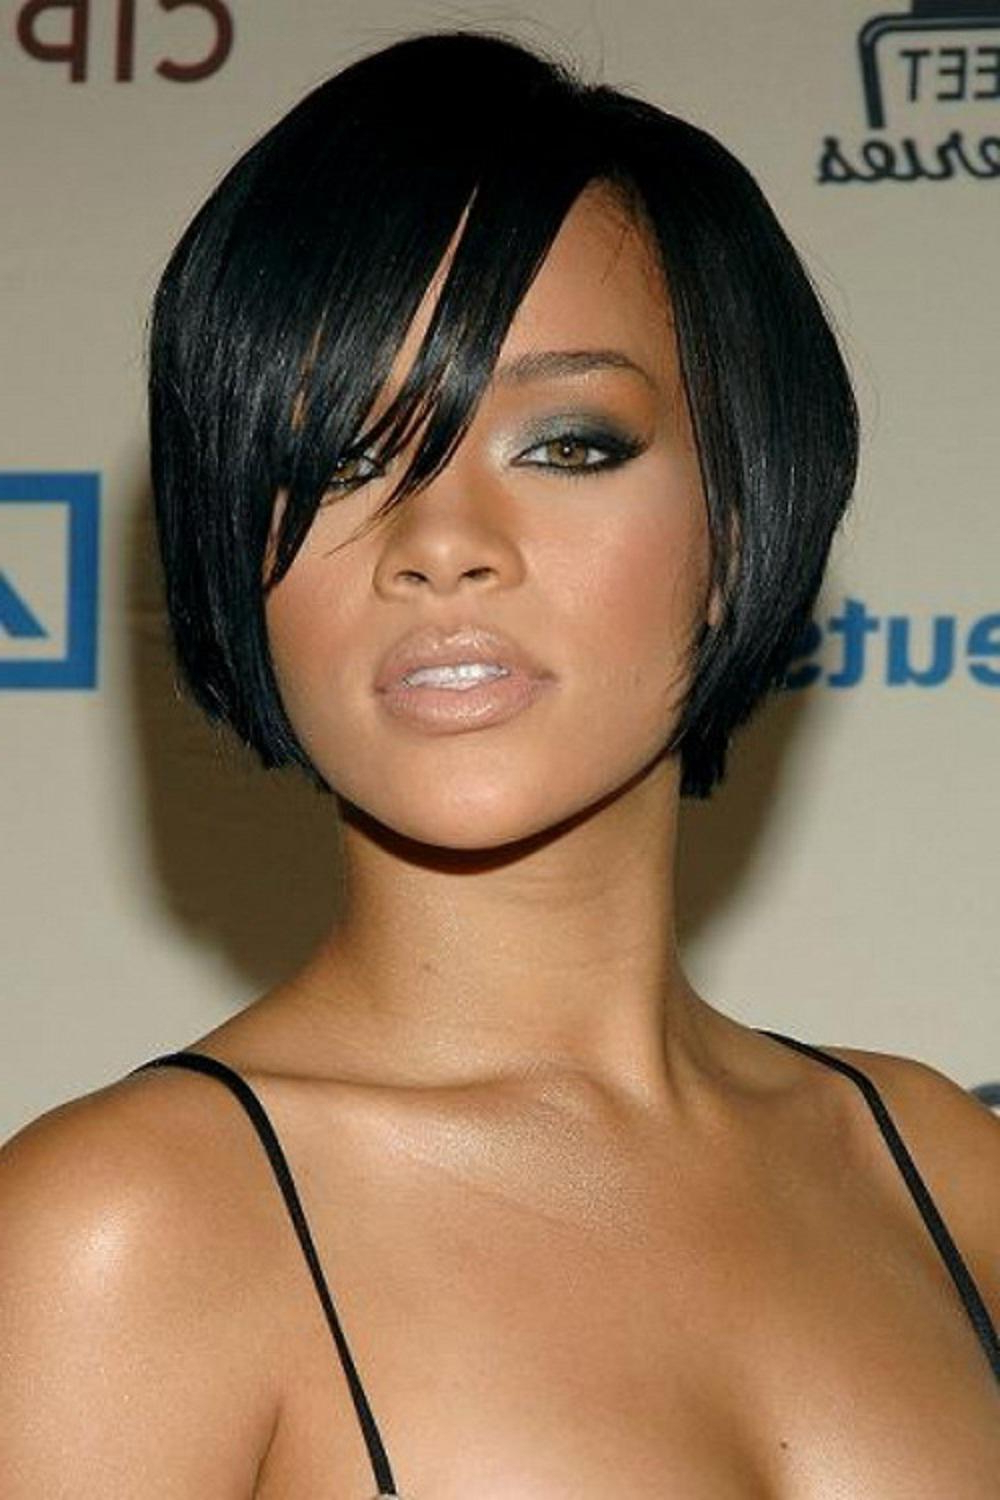 Inspiring Short Hair Short Haircuts With Black Hairstyles For Black For Short Hairstyles For African American Women With Thin Hair (View 6 of 25)